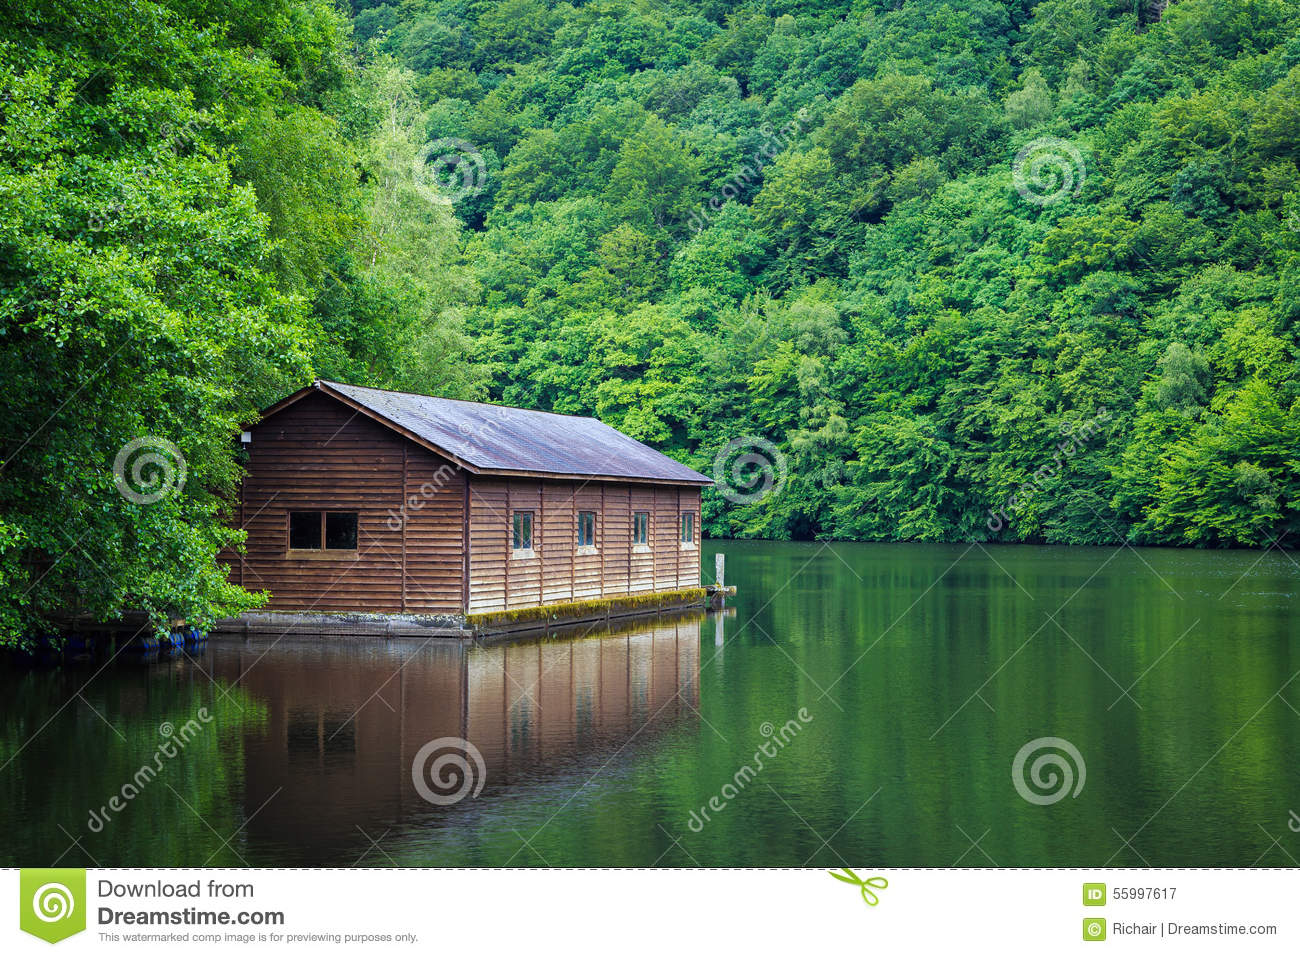 3d Fish Wallpaper Download Cabin On The Lake Stock Image Image Of Lush Trees